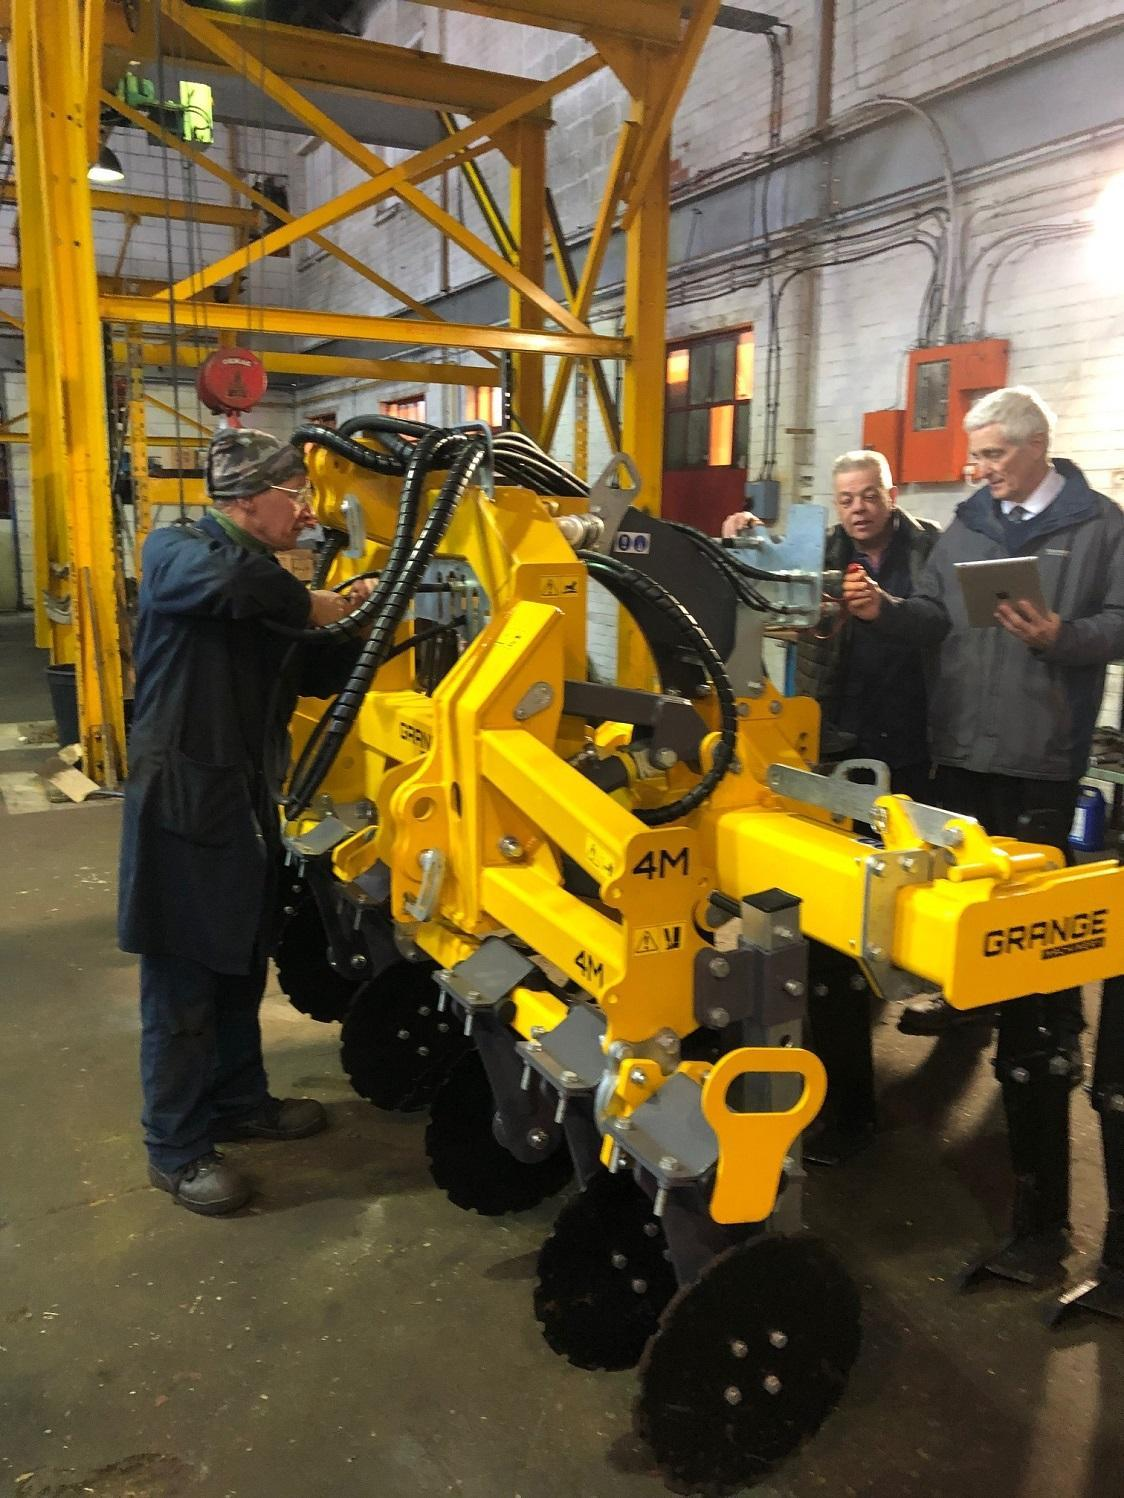 Polydon Industries engineers at work on yellow machinery